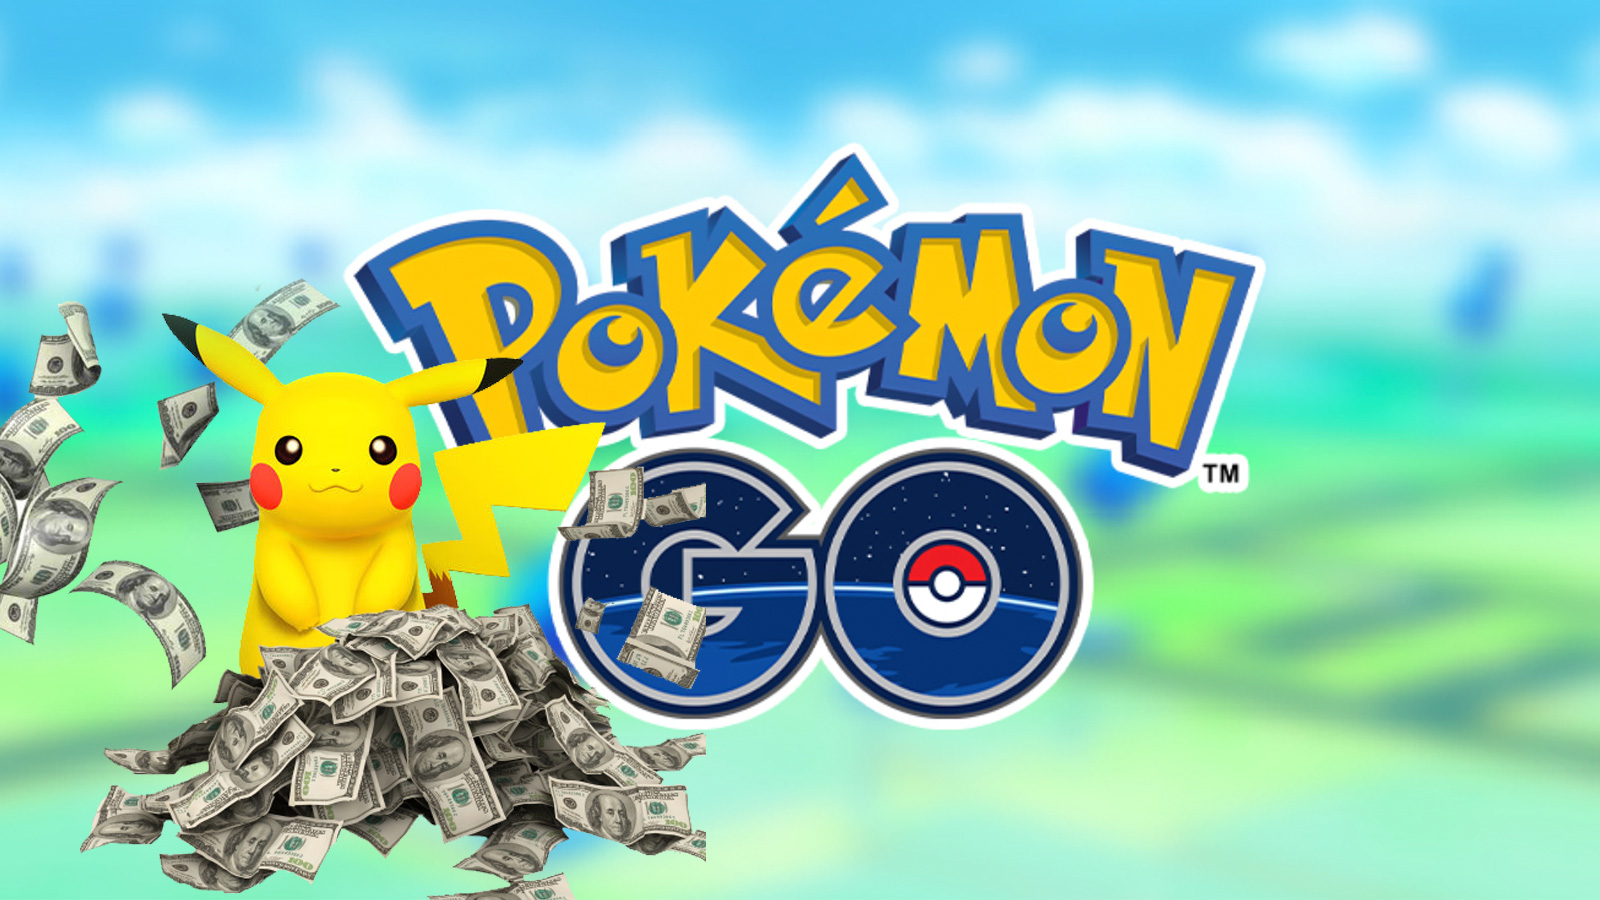 Screenshot of Pikachu with money pile over Pokemon Go logo.